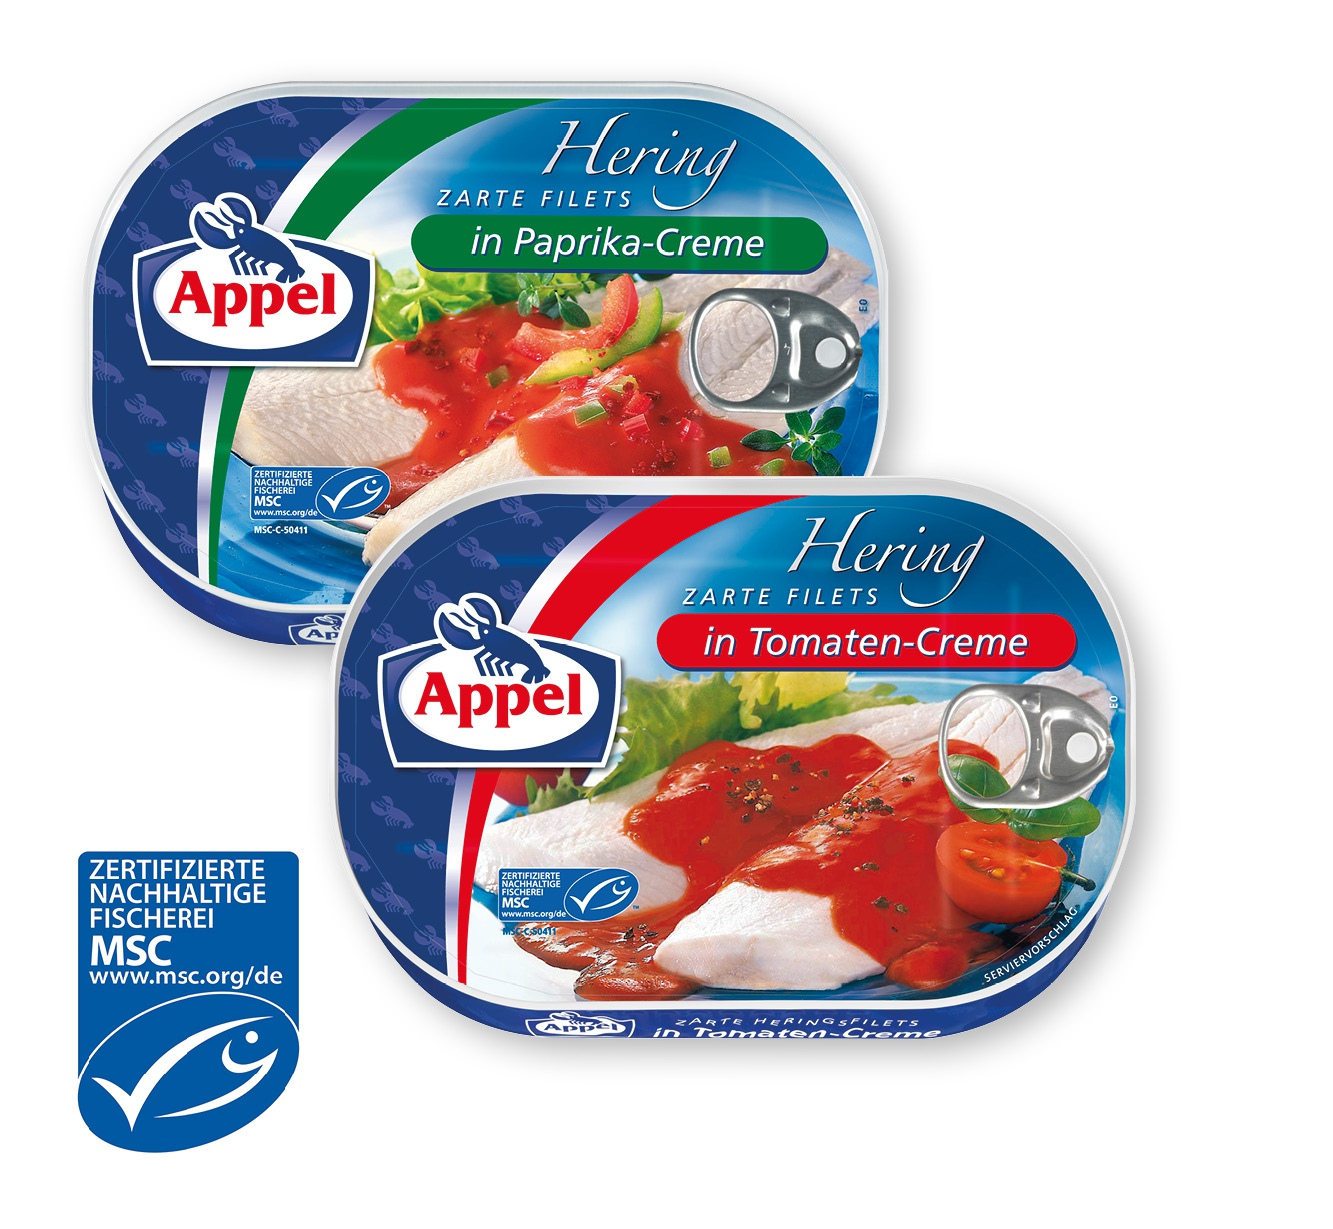 Appel MSC Hering zarte Filets